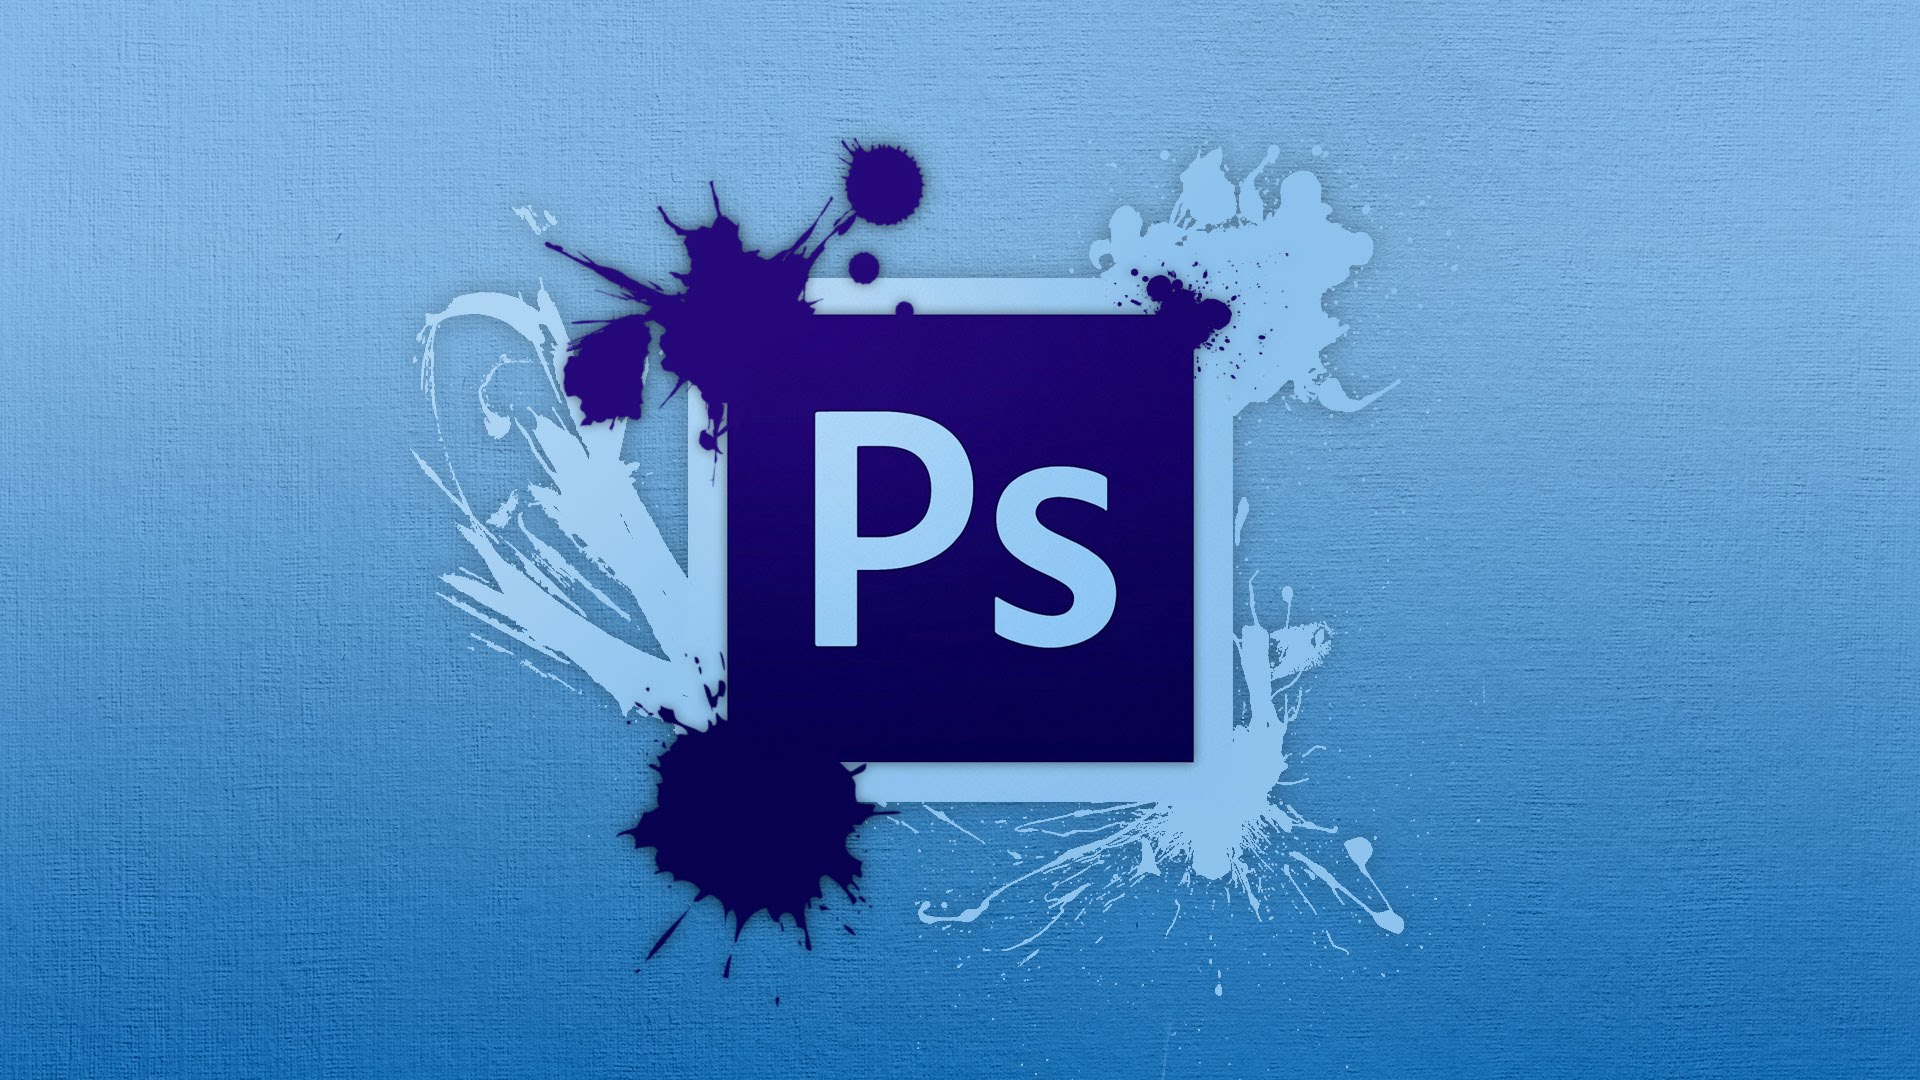 Adobe Photoshop Setup Free Download for Windows 7